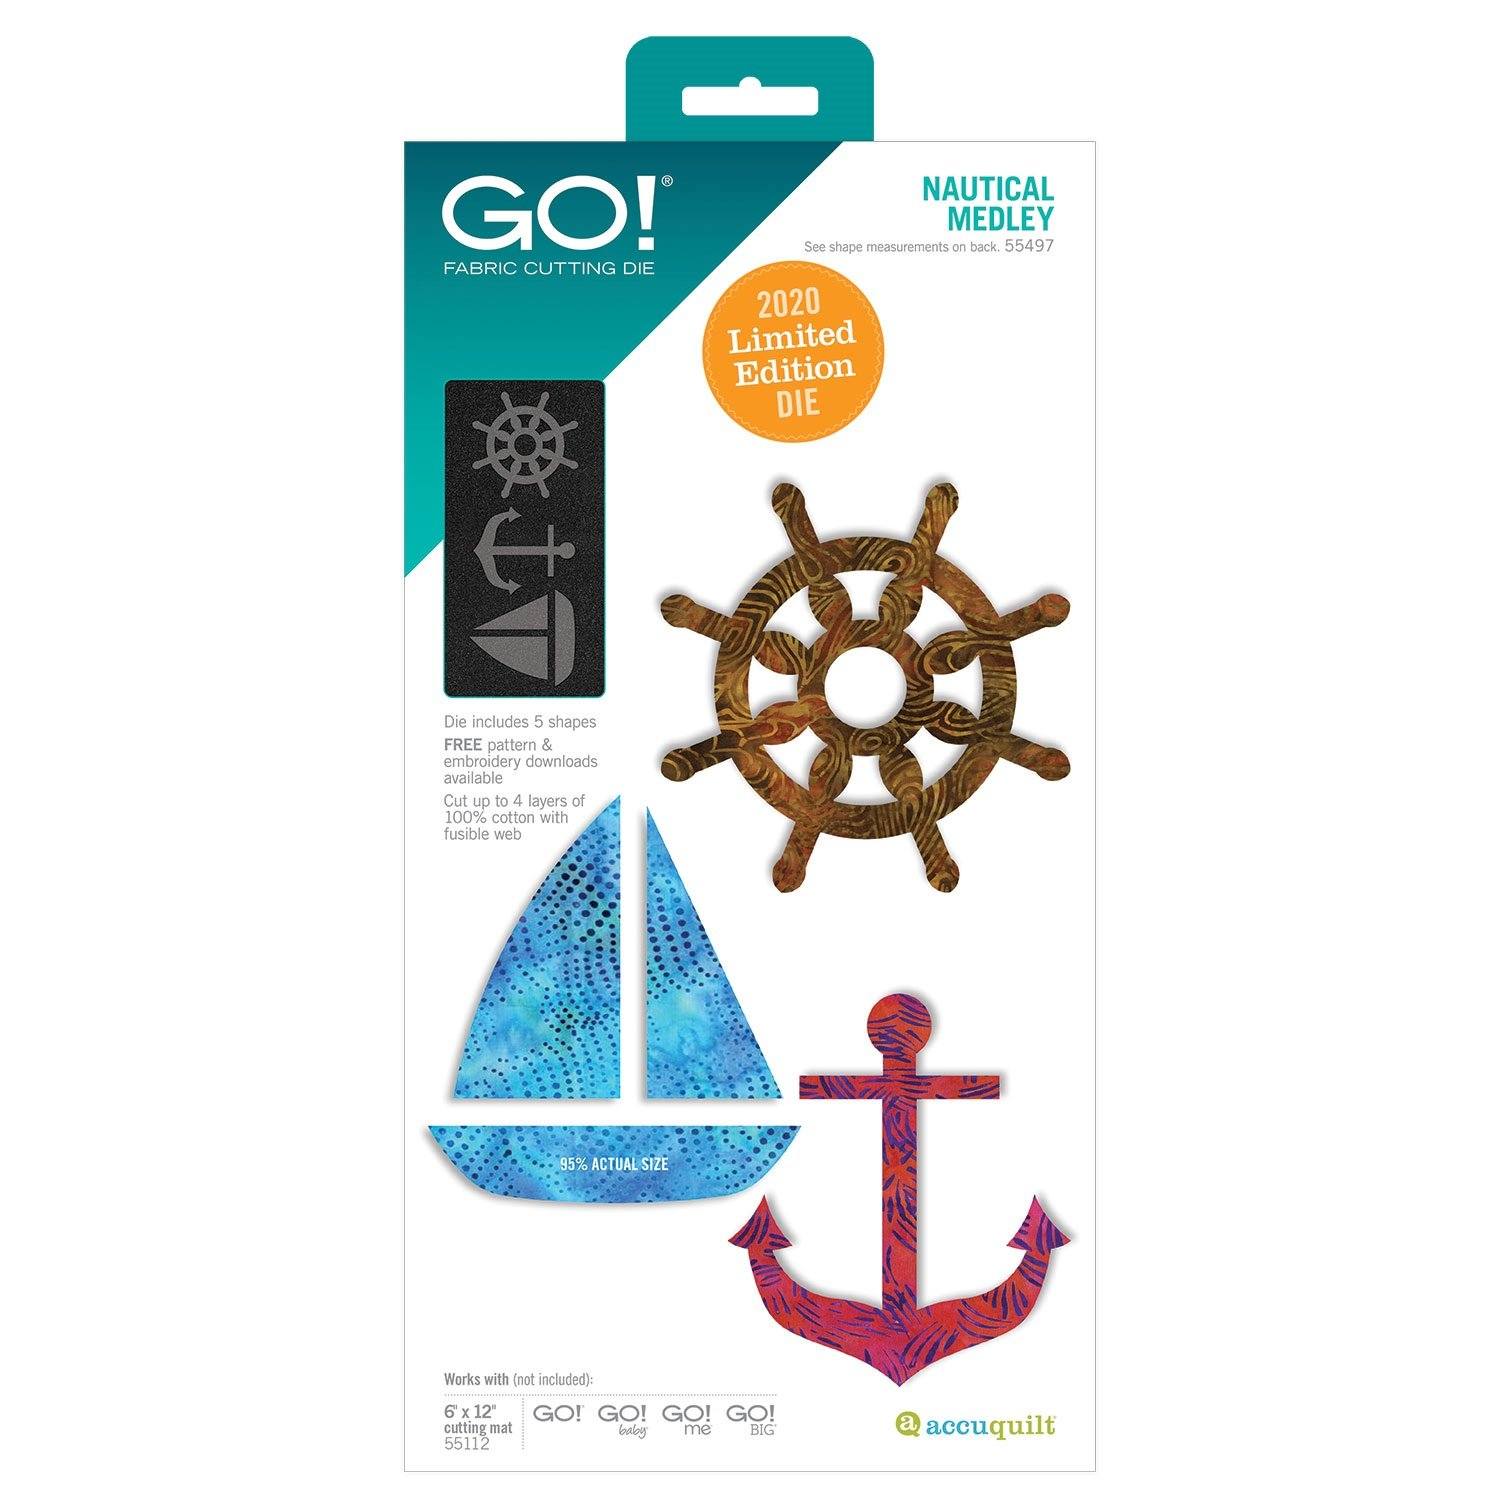 Nautical Medley Limited Edition